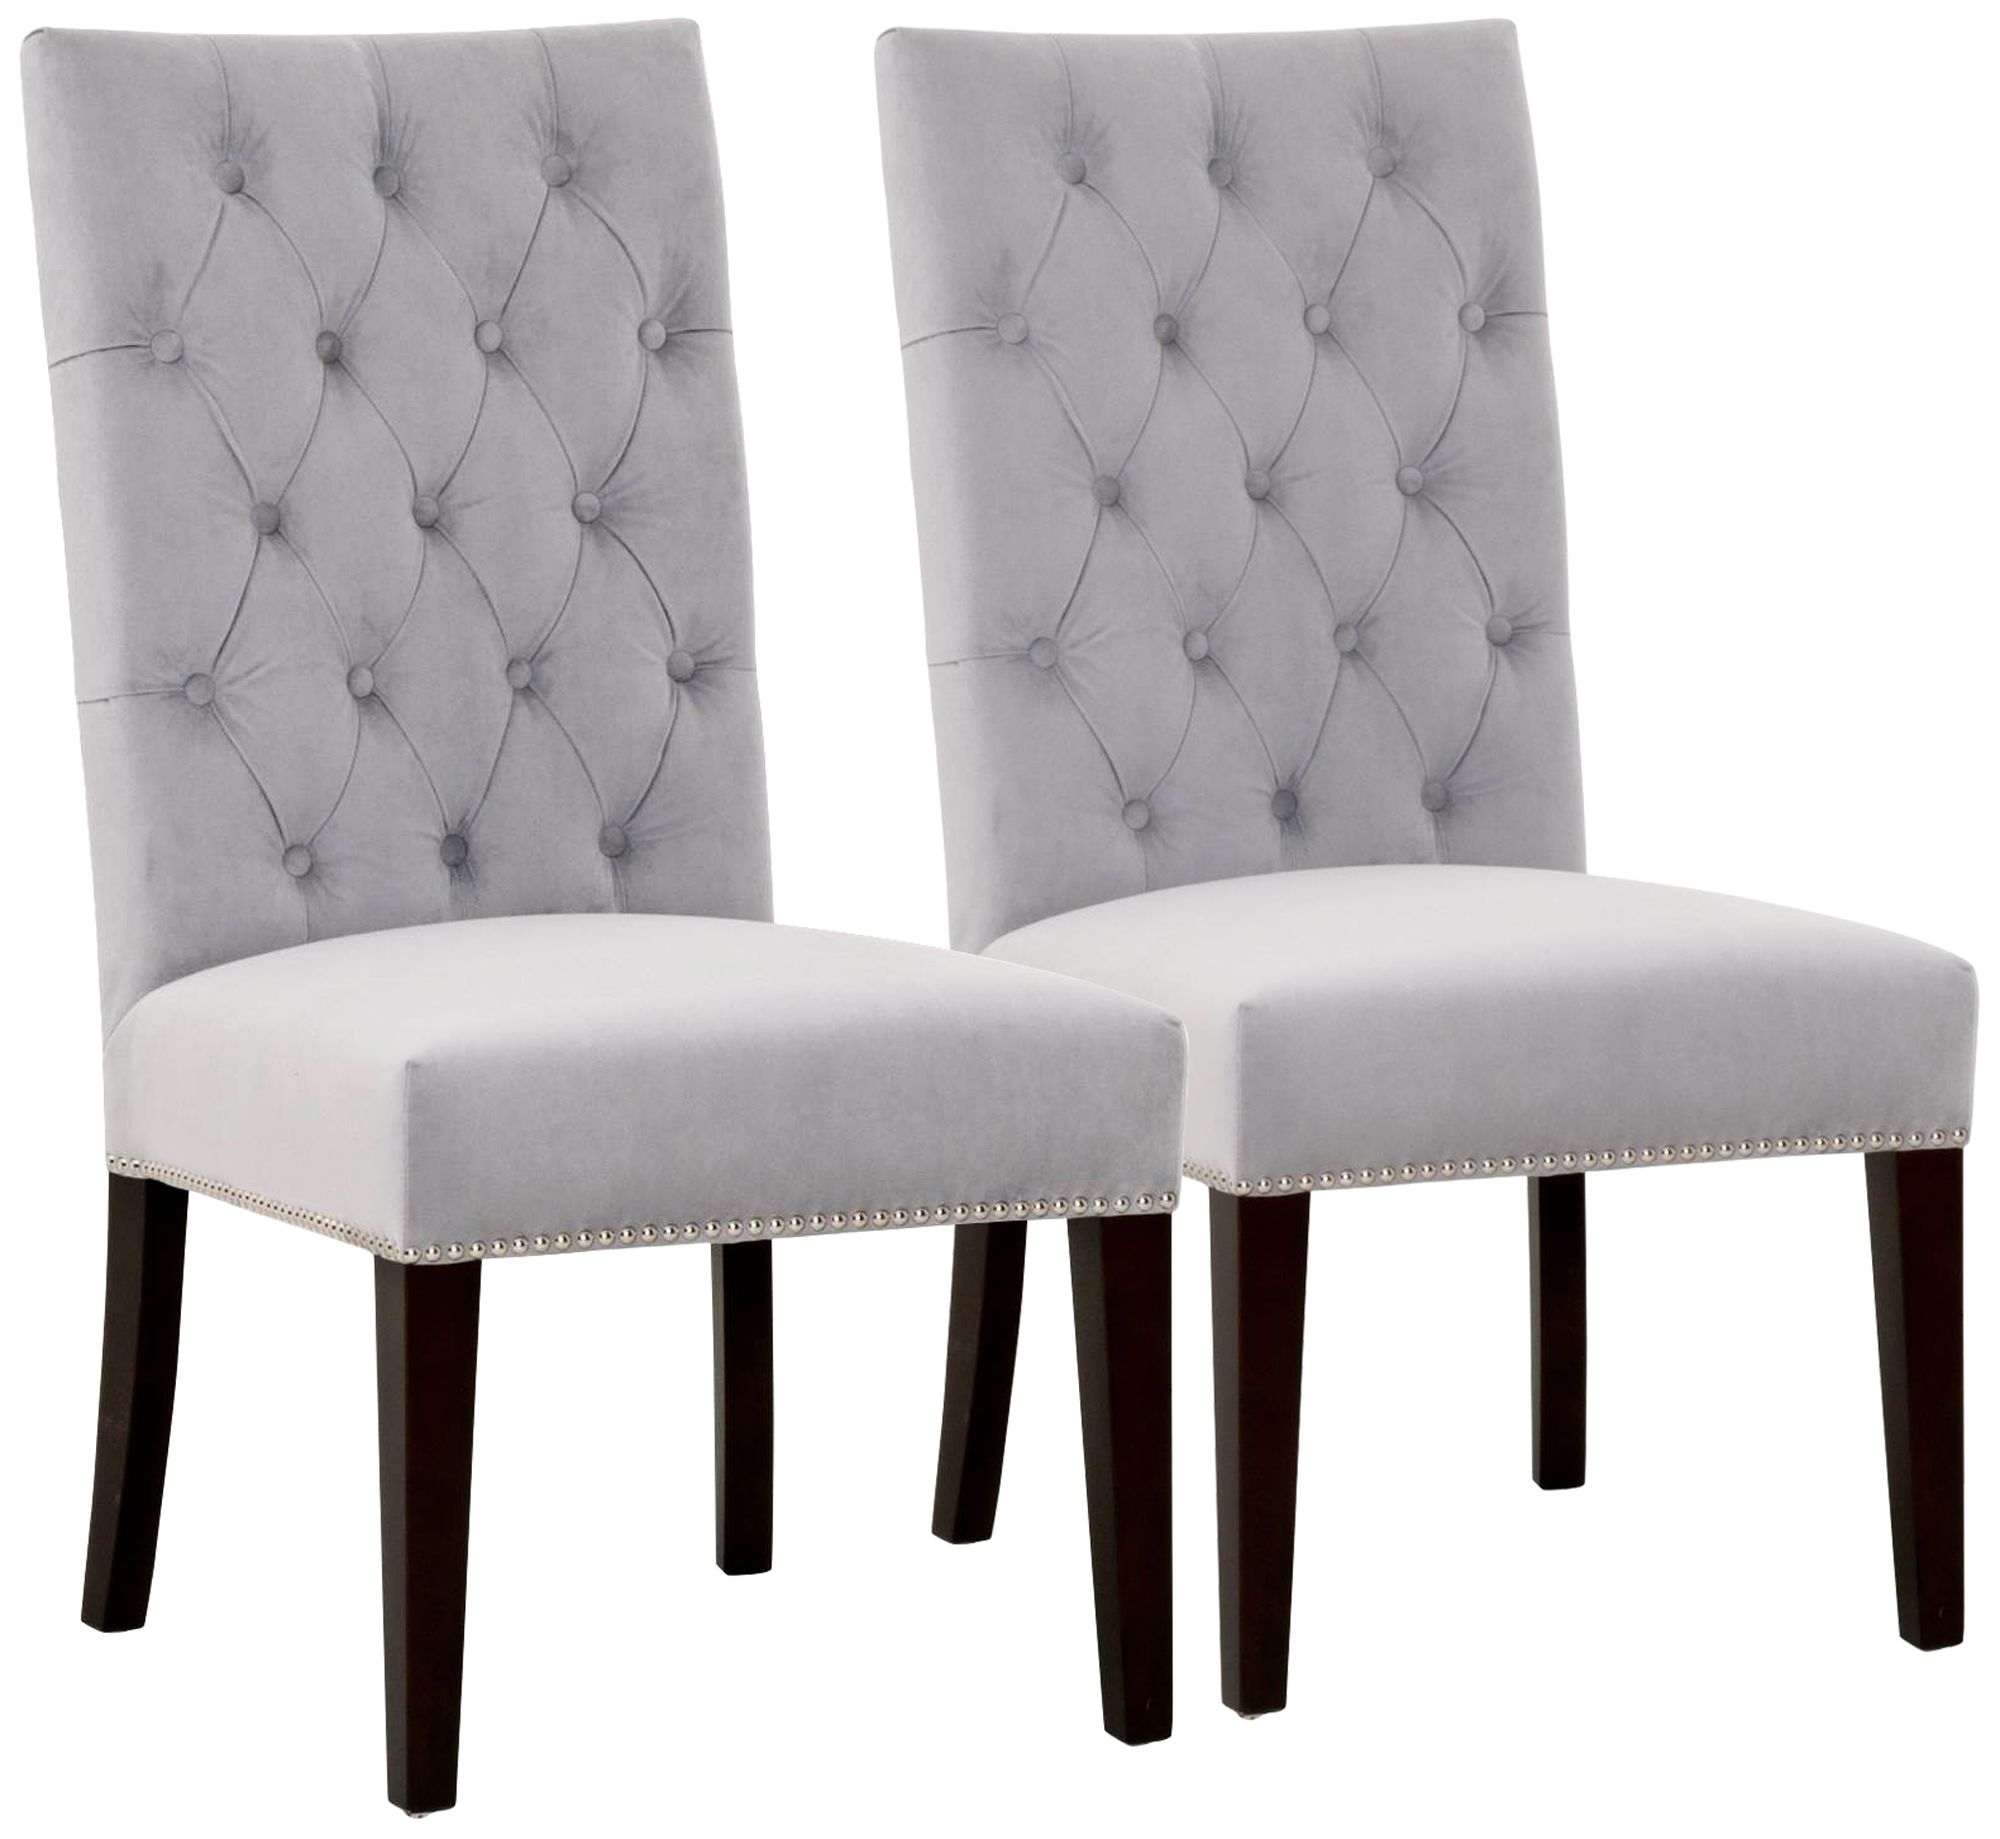 Velvet Tufted Dining Chairs Full Size Accent Chairs Luxury